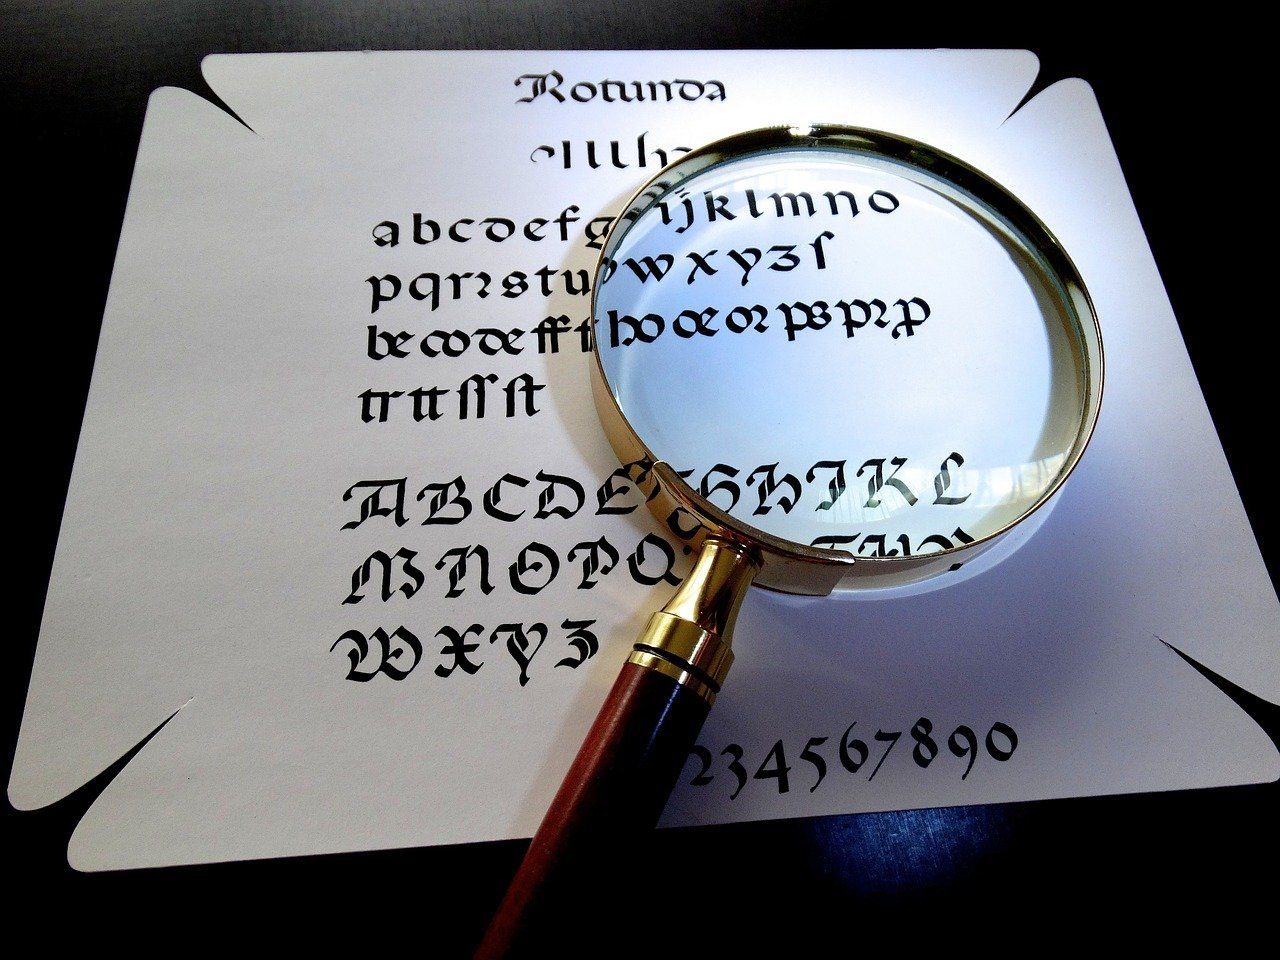 A magnifying glass on a piece of paper